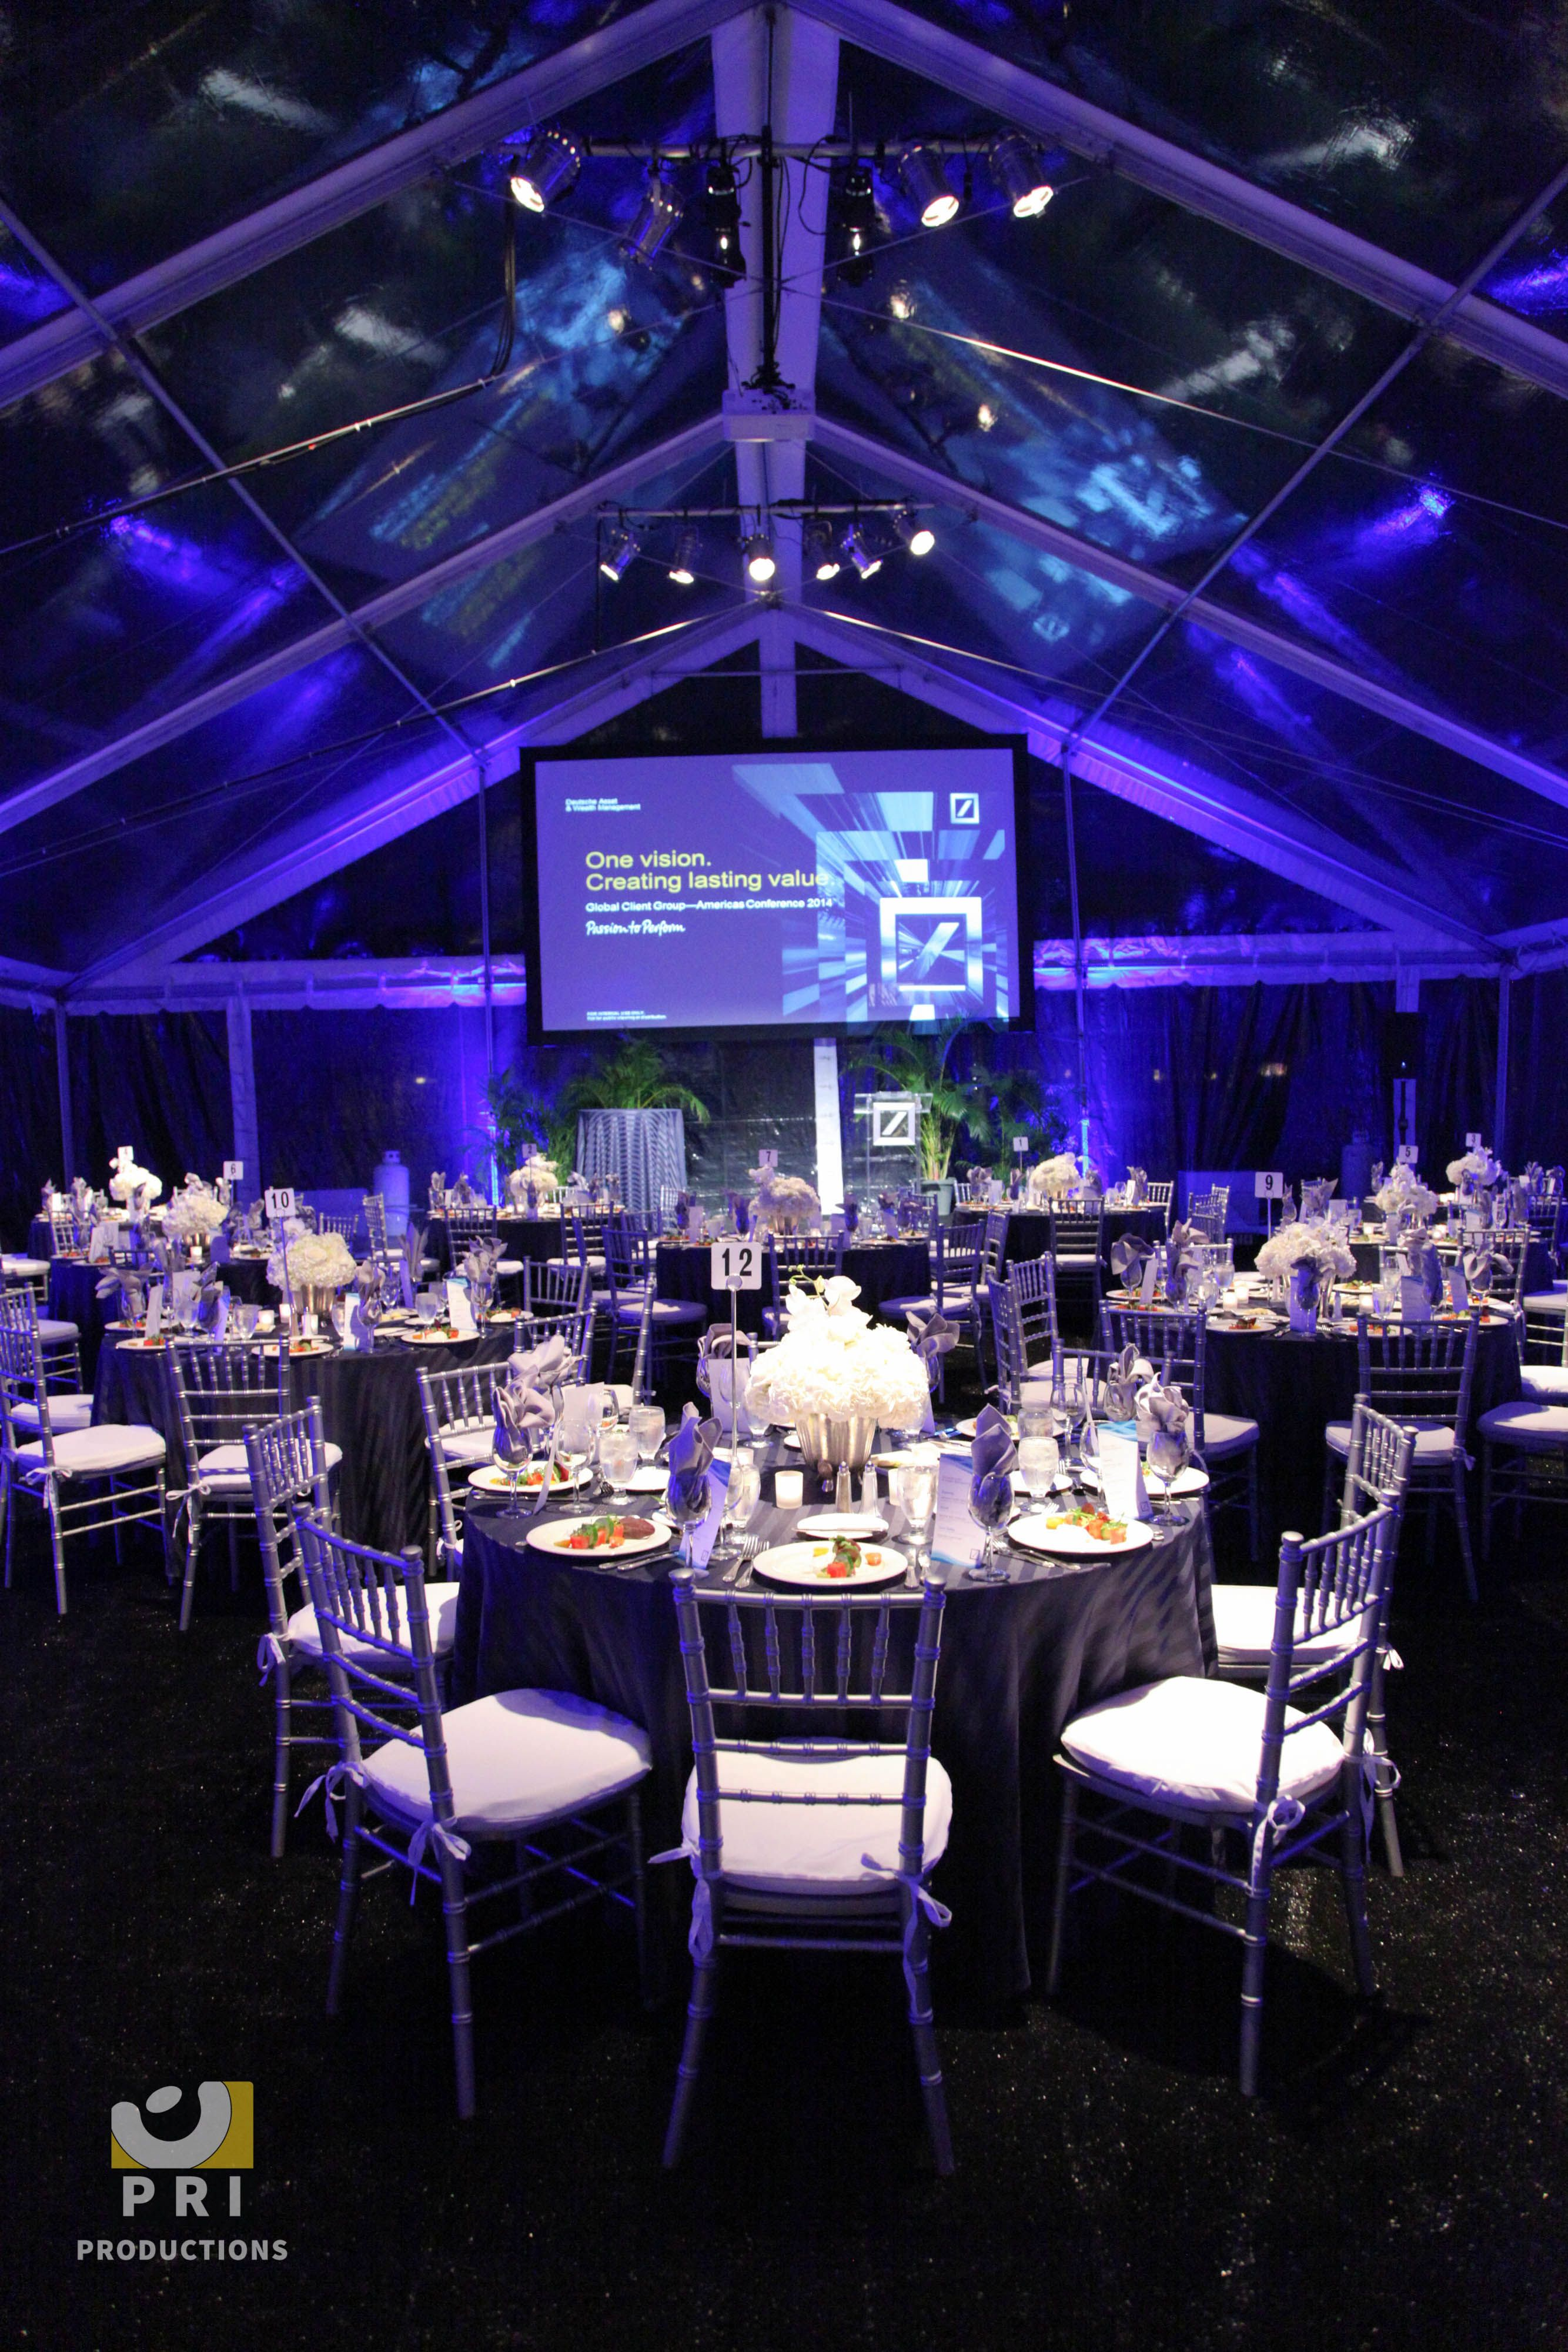 The Purple And Blue Led Lights Create The Perfect Ambiance Under This Clear Tent Event Lighting Tent Decorations Event Producer